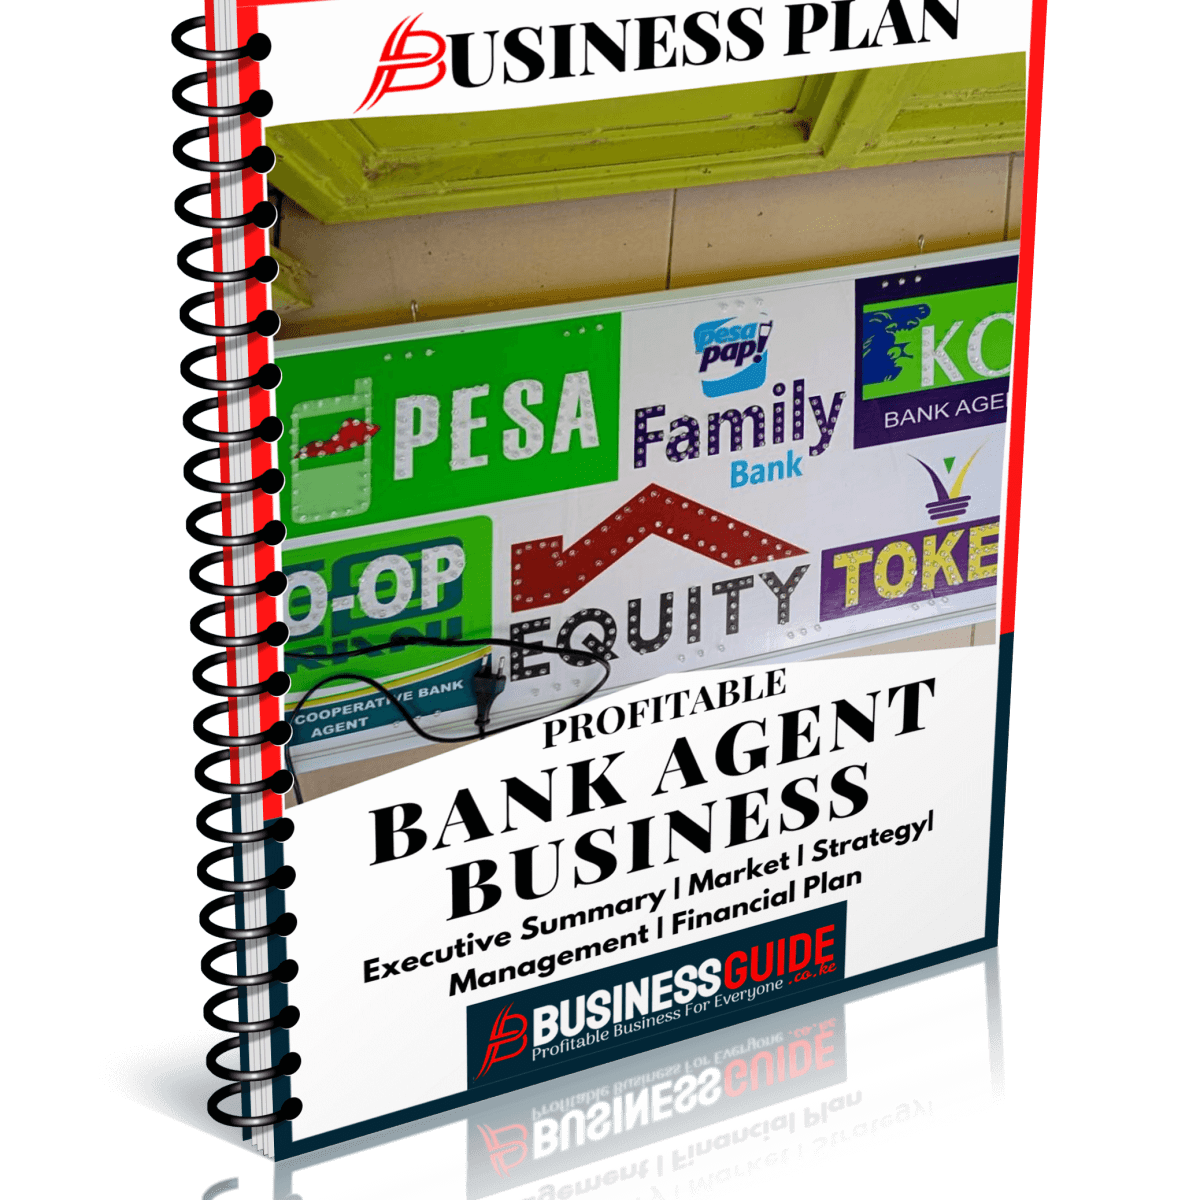 Mpesa Sub agent Business Guide In Kenya Business Plan Pdf